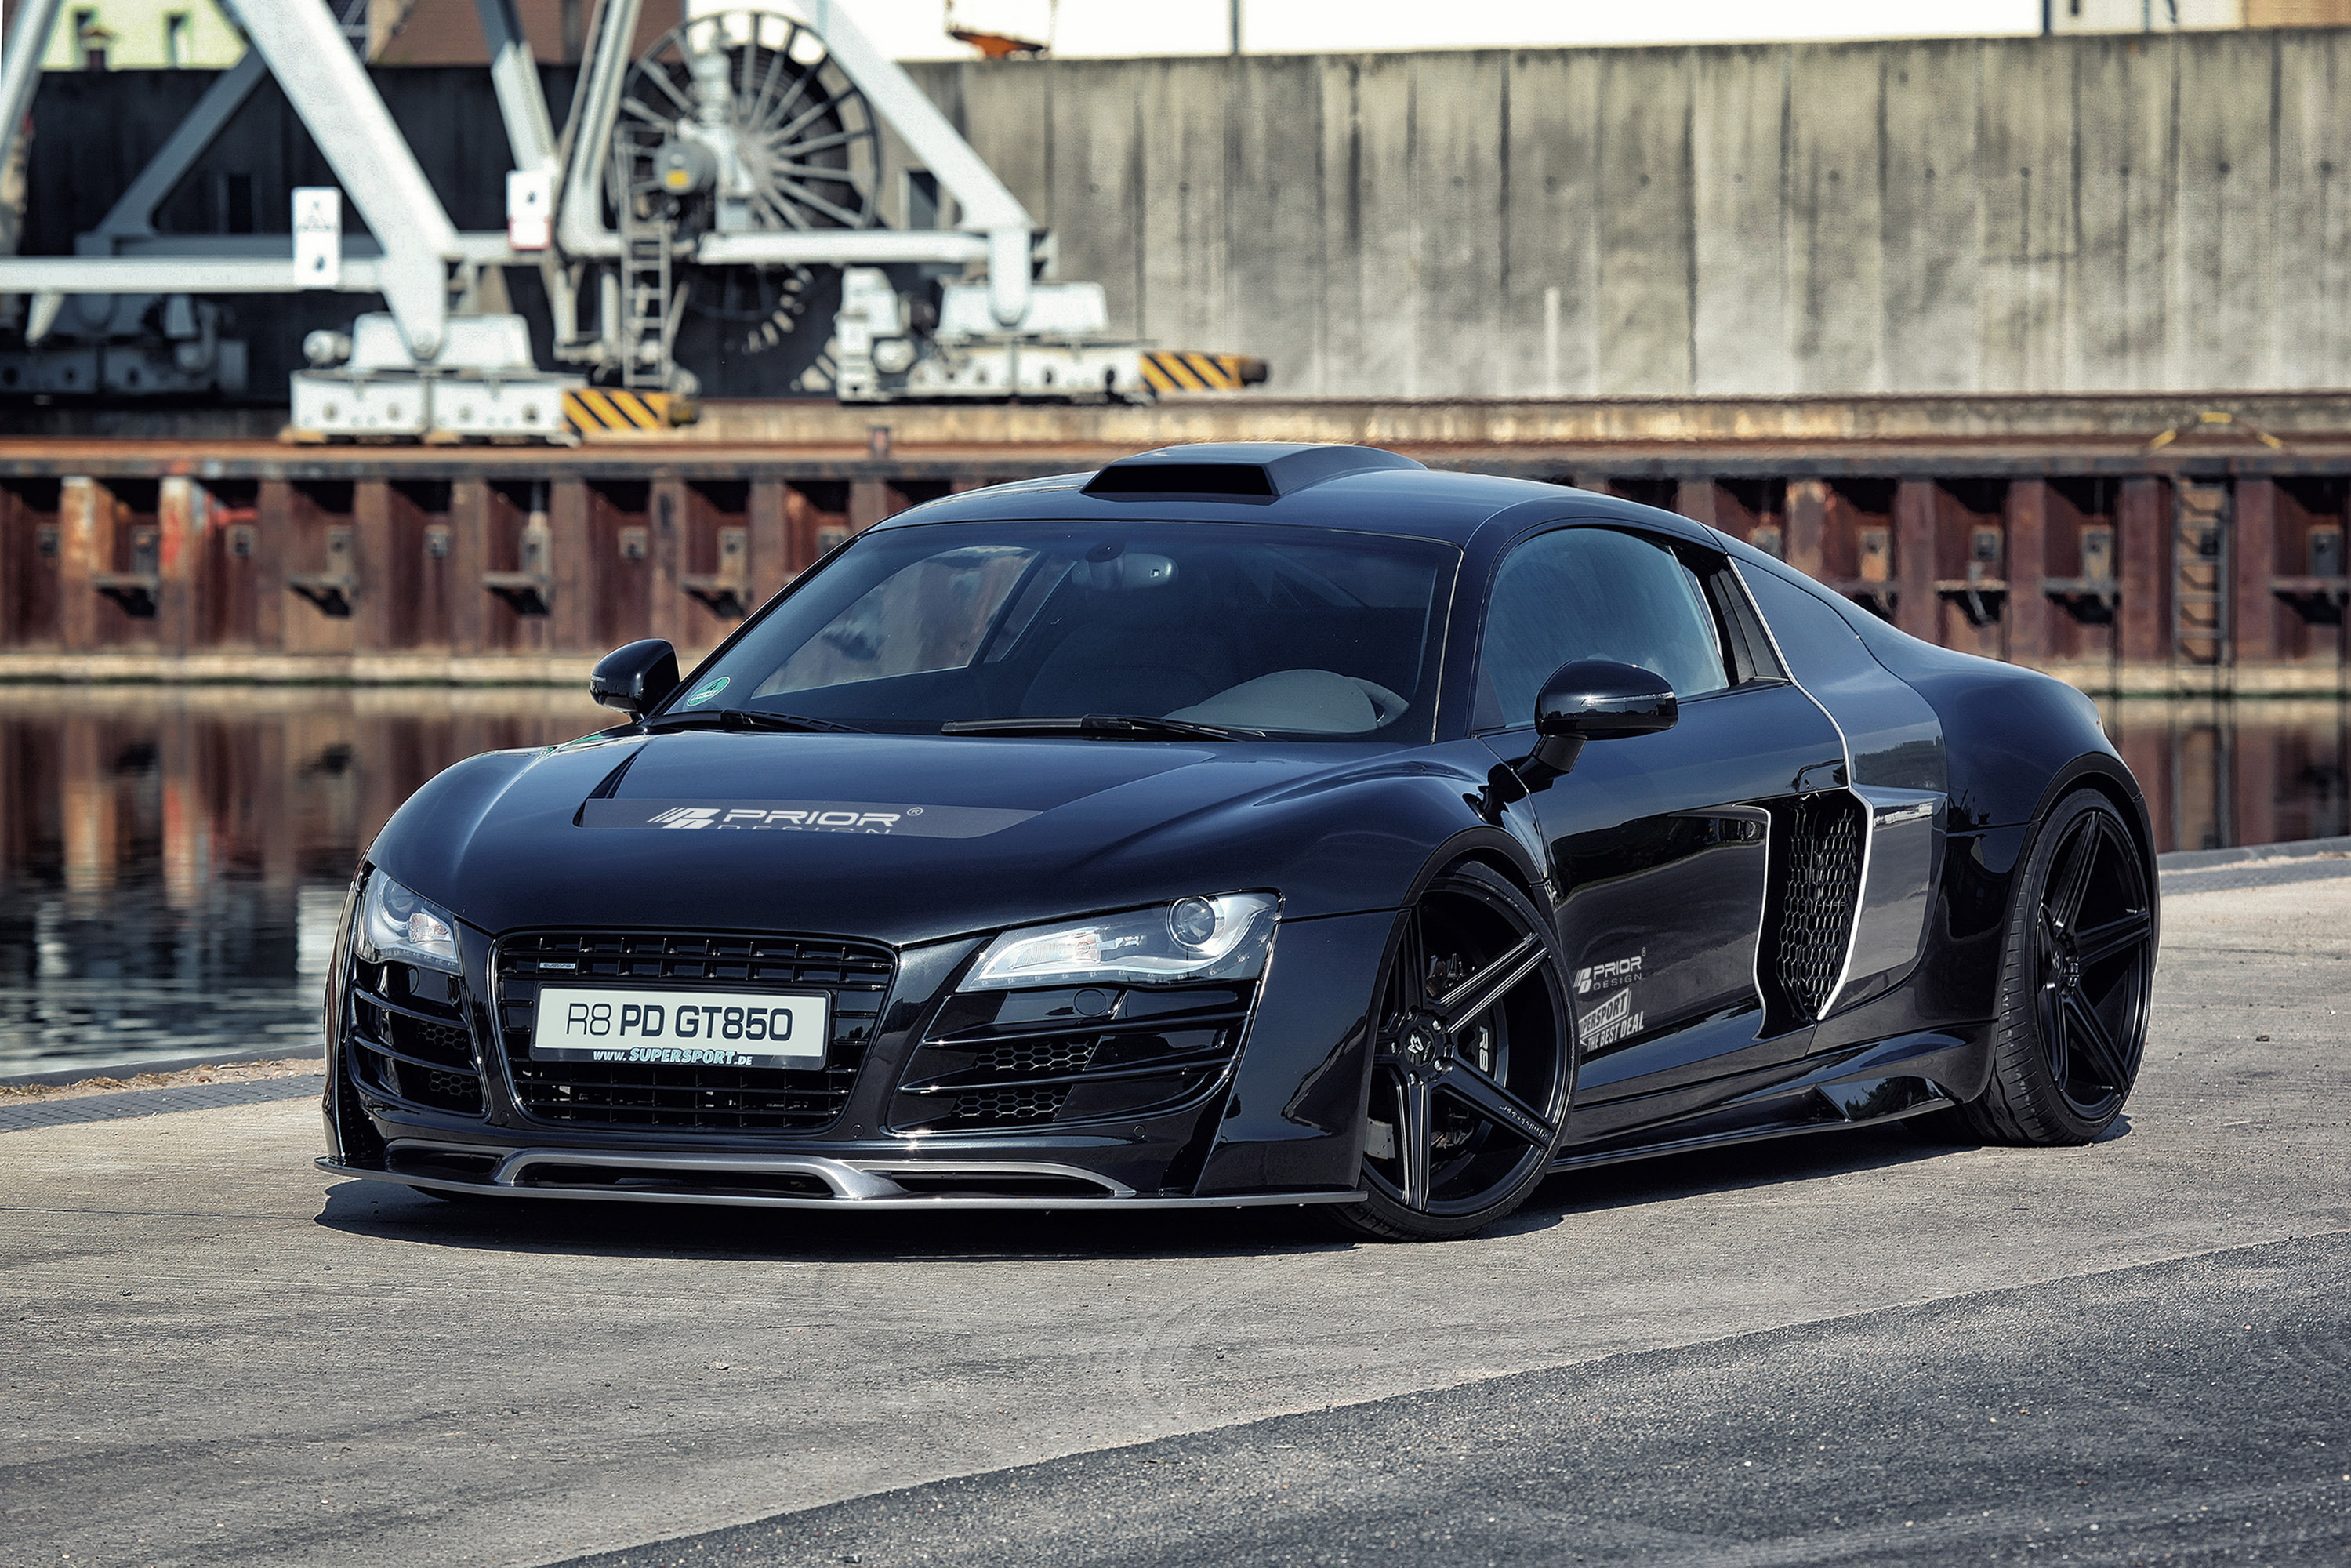 New Photoshoot For 2013 Prior Design Audi R8 Pd Gt850